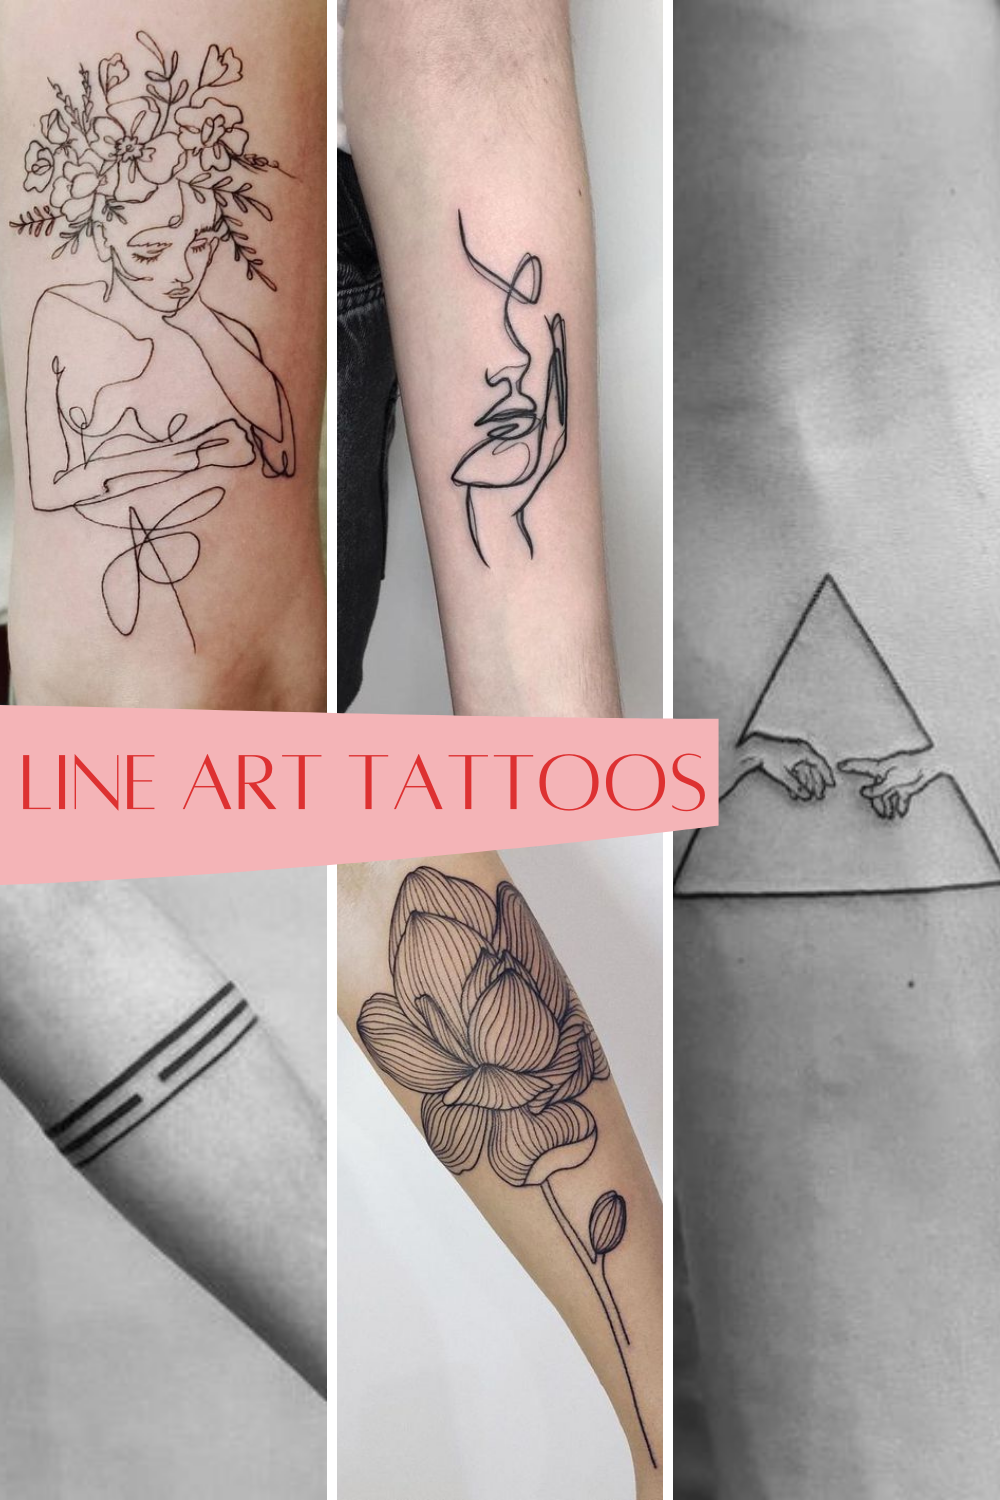 What Are Line Art Tattoos Examples